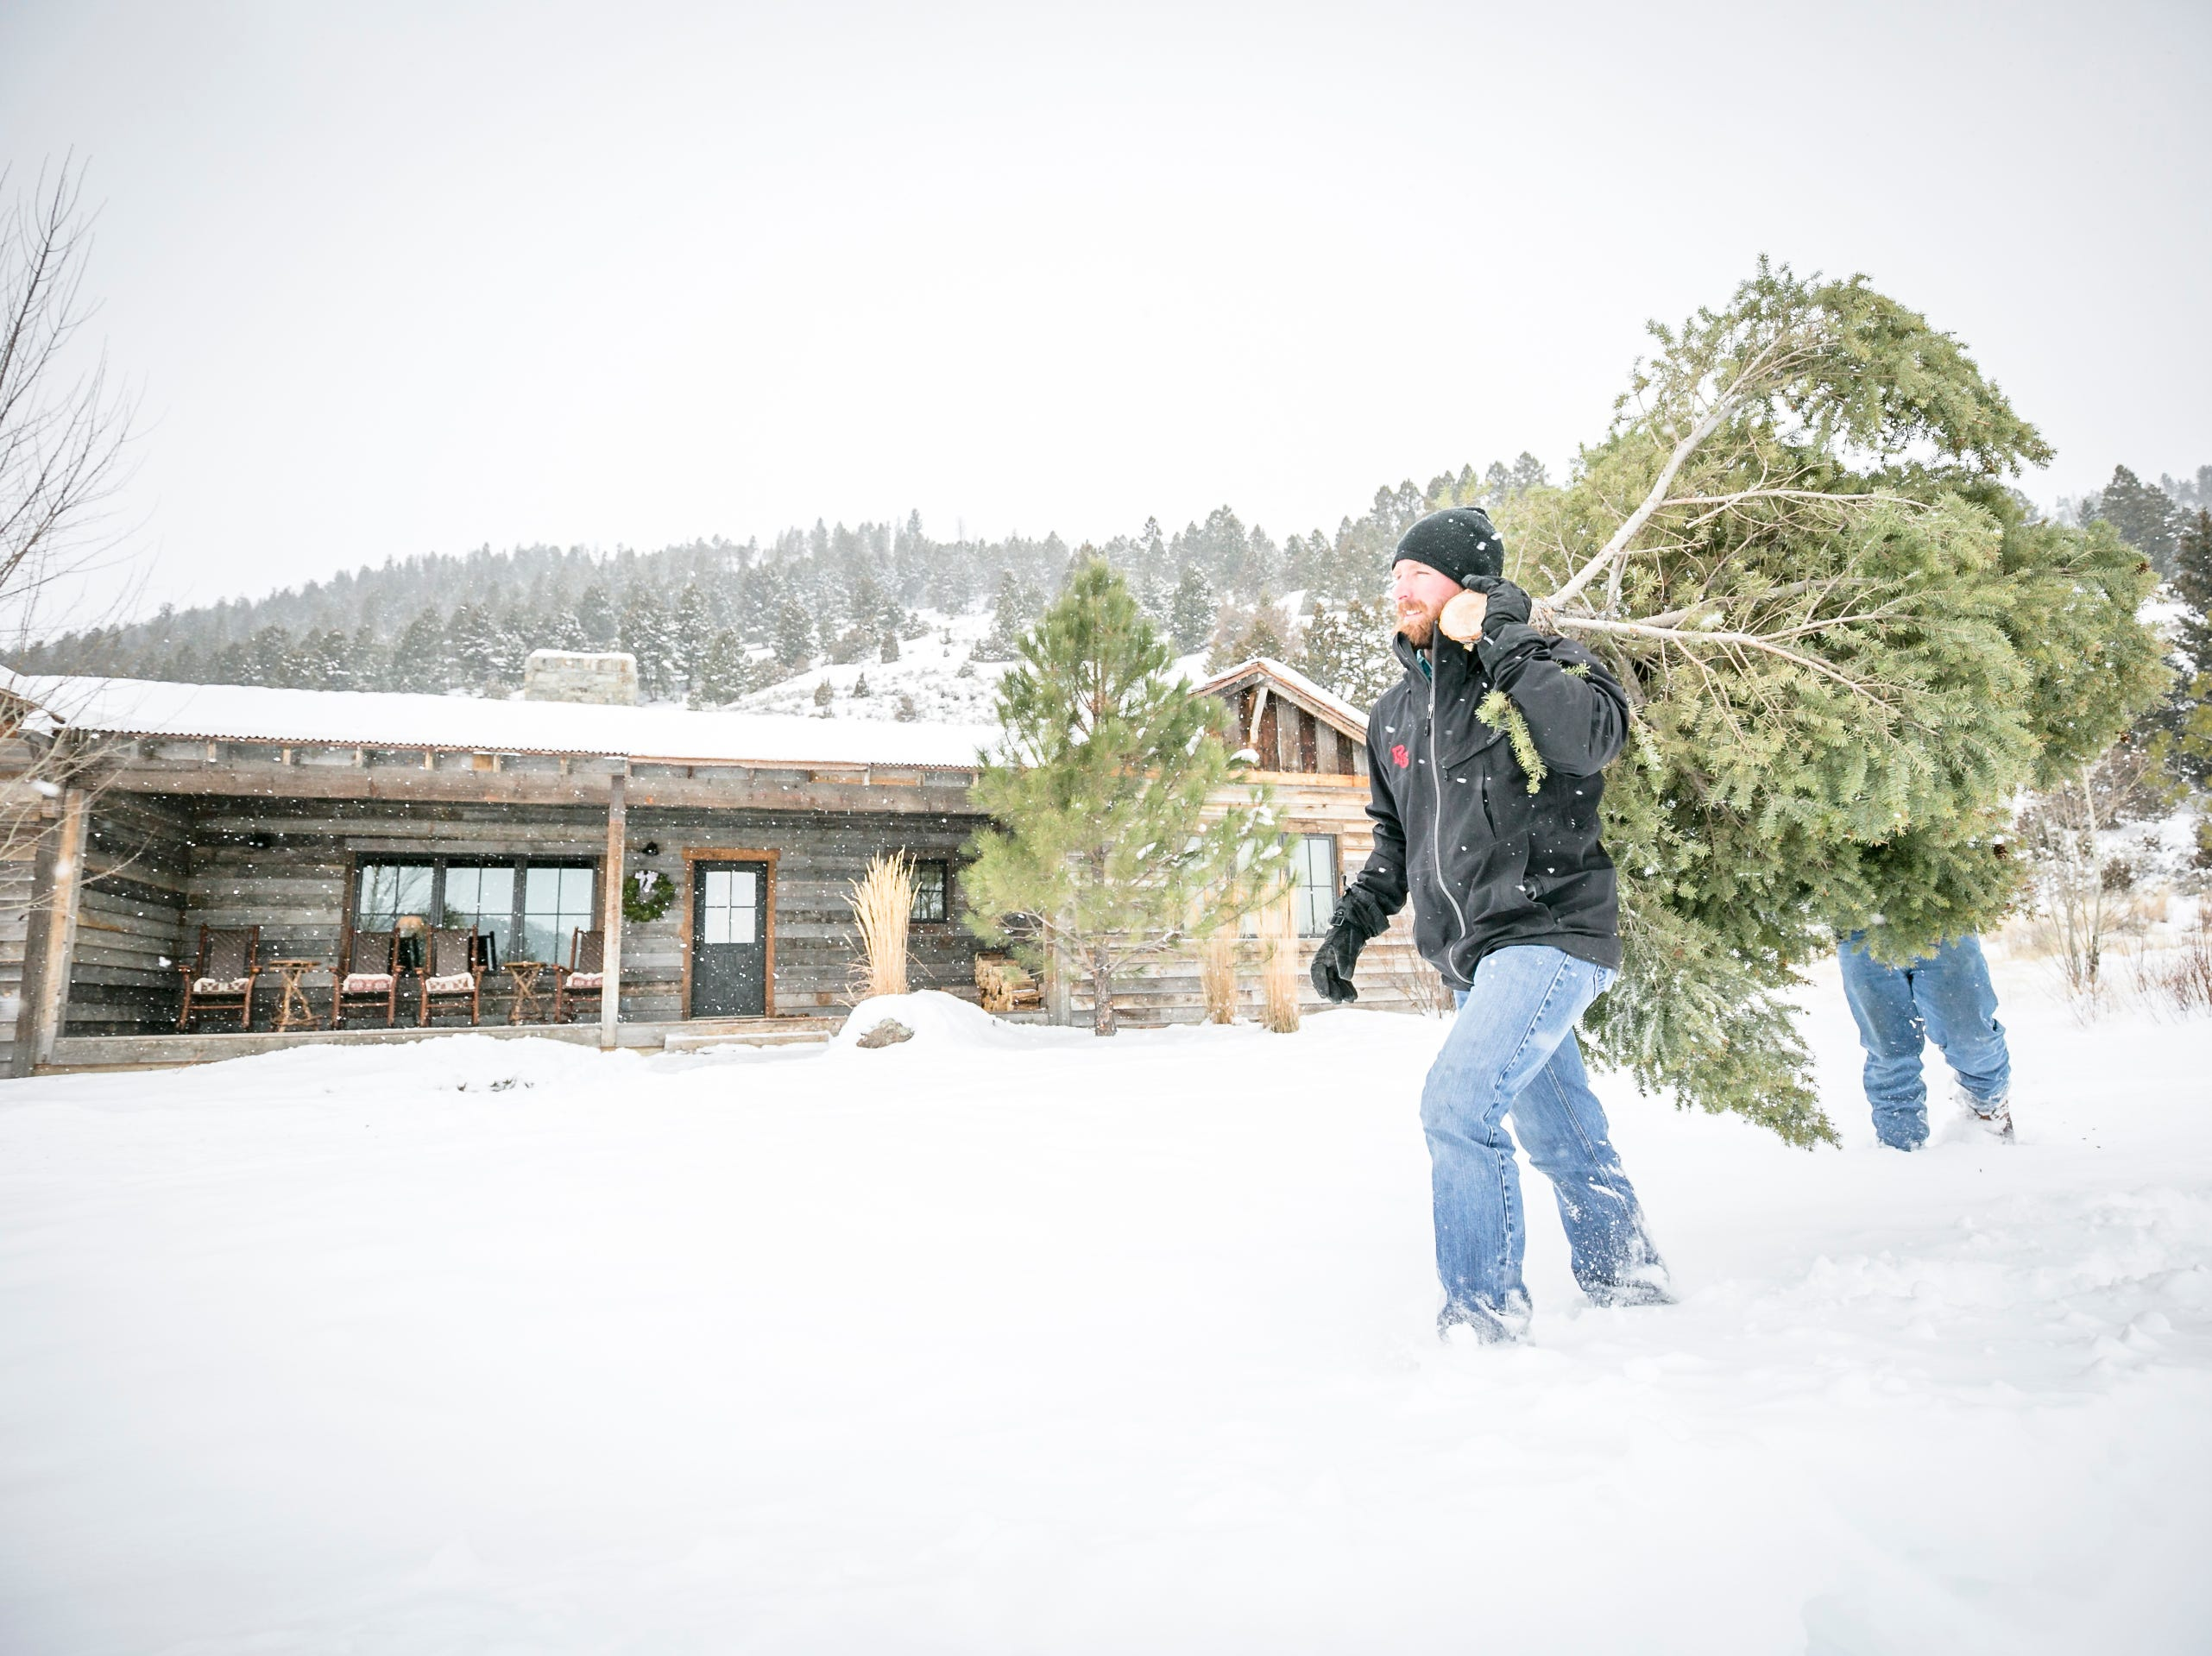 Winter fun at The Ranch at Rock Creek near Philipsburg